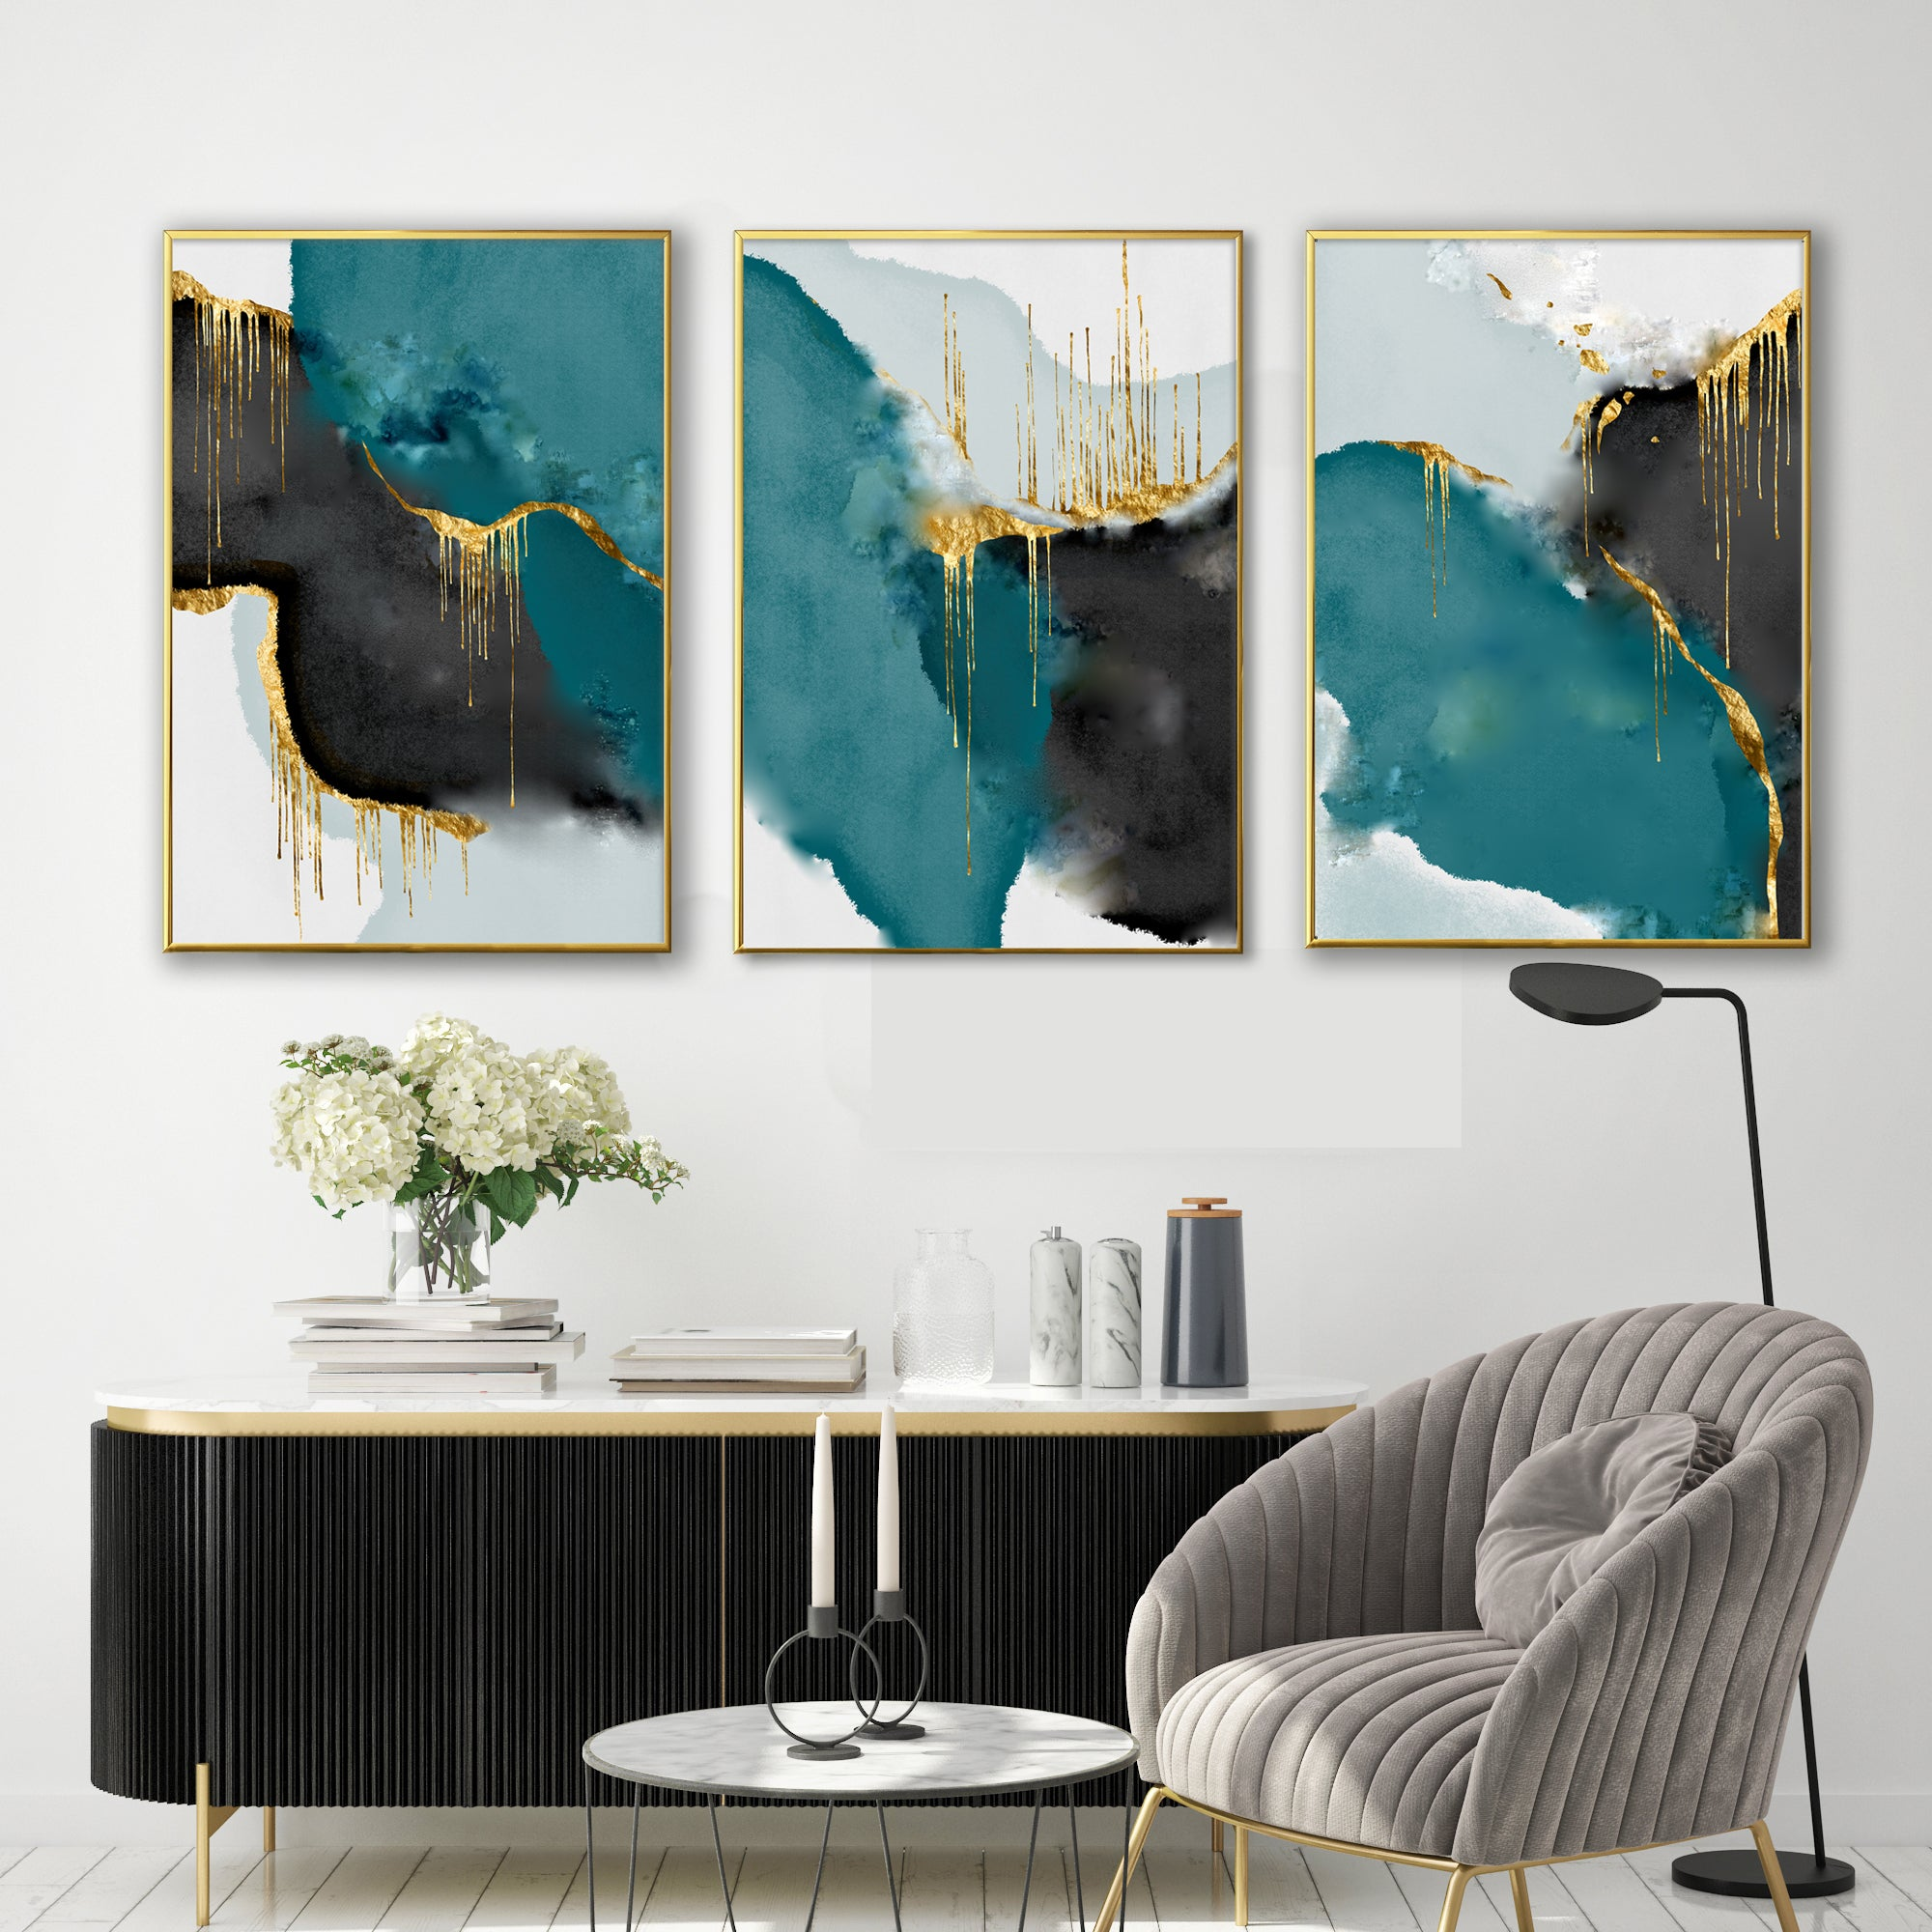 GREEN & GOLD DRIP GALLERY WALL